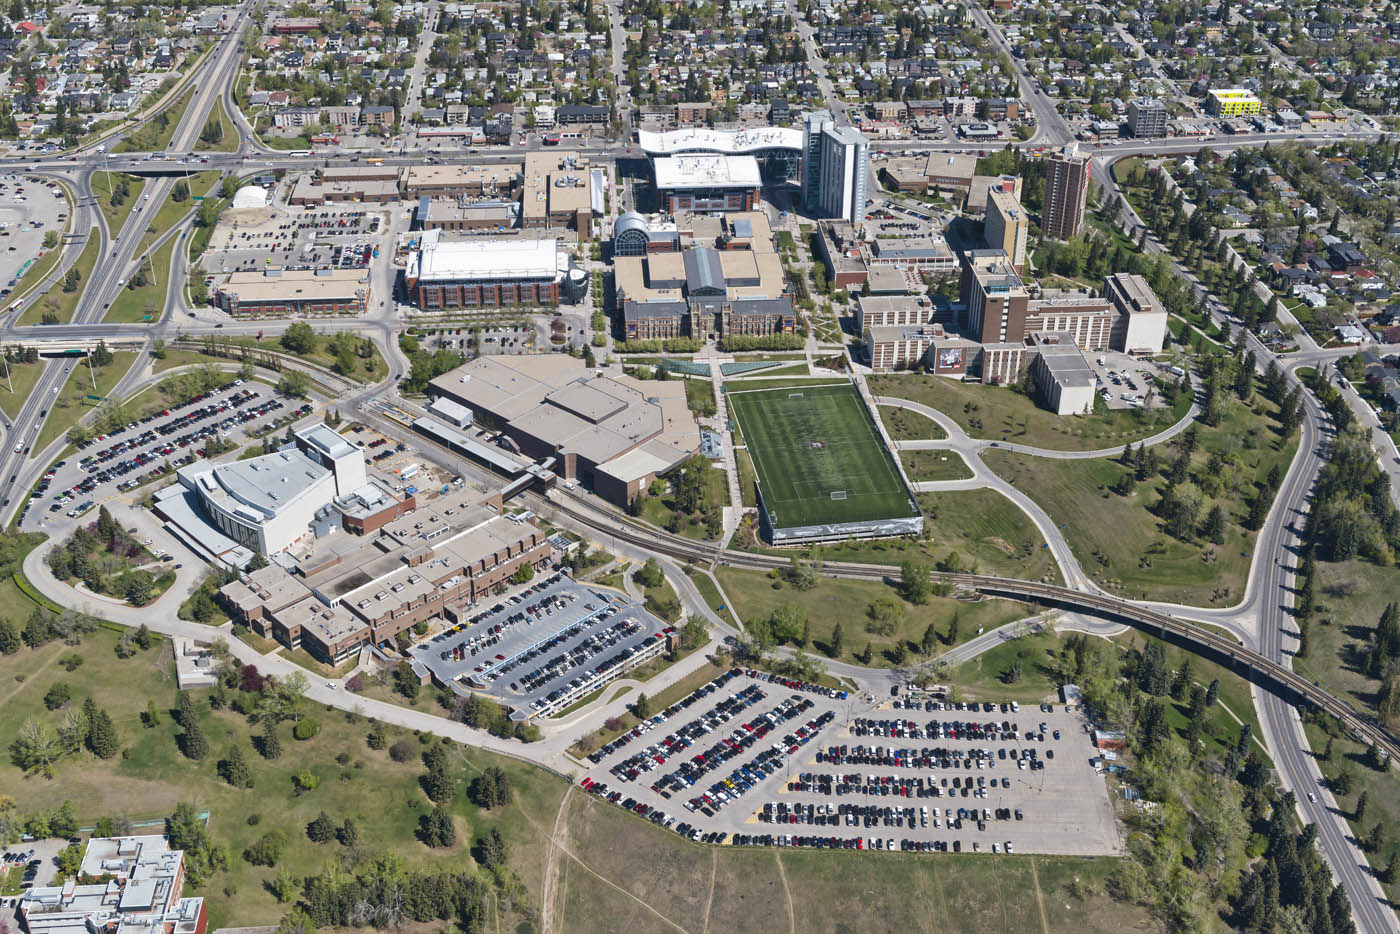 SAIT campus (photo credit: Peak Aerials)